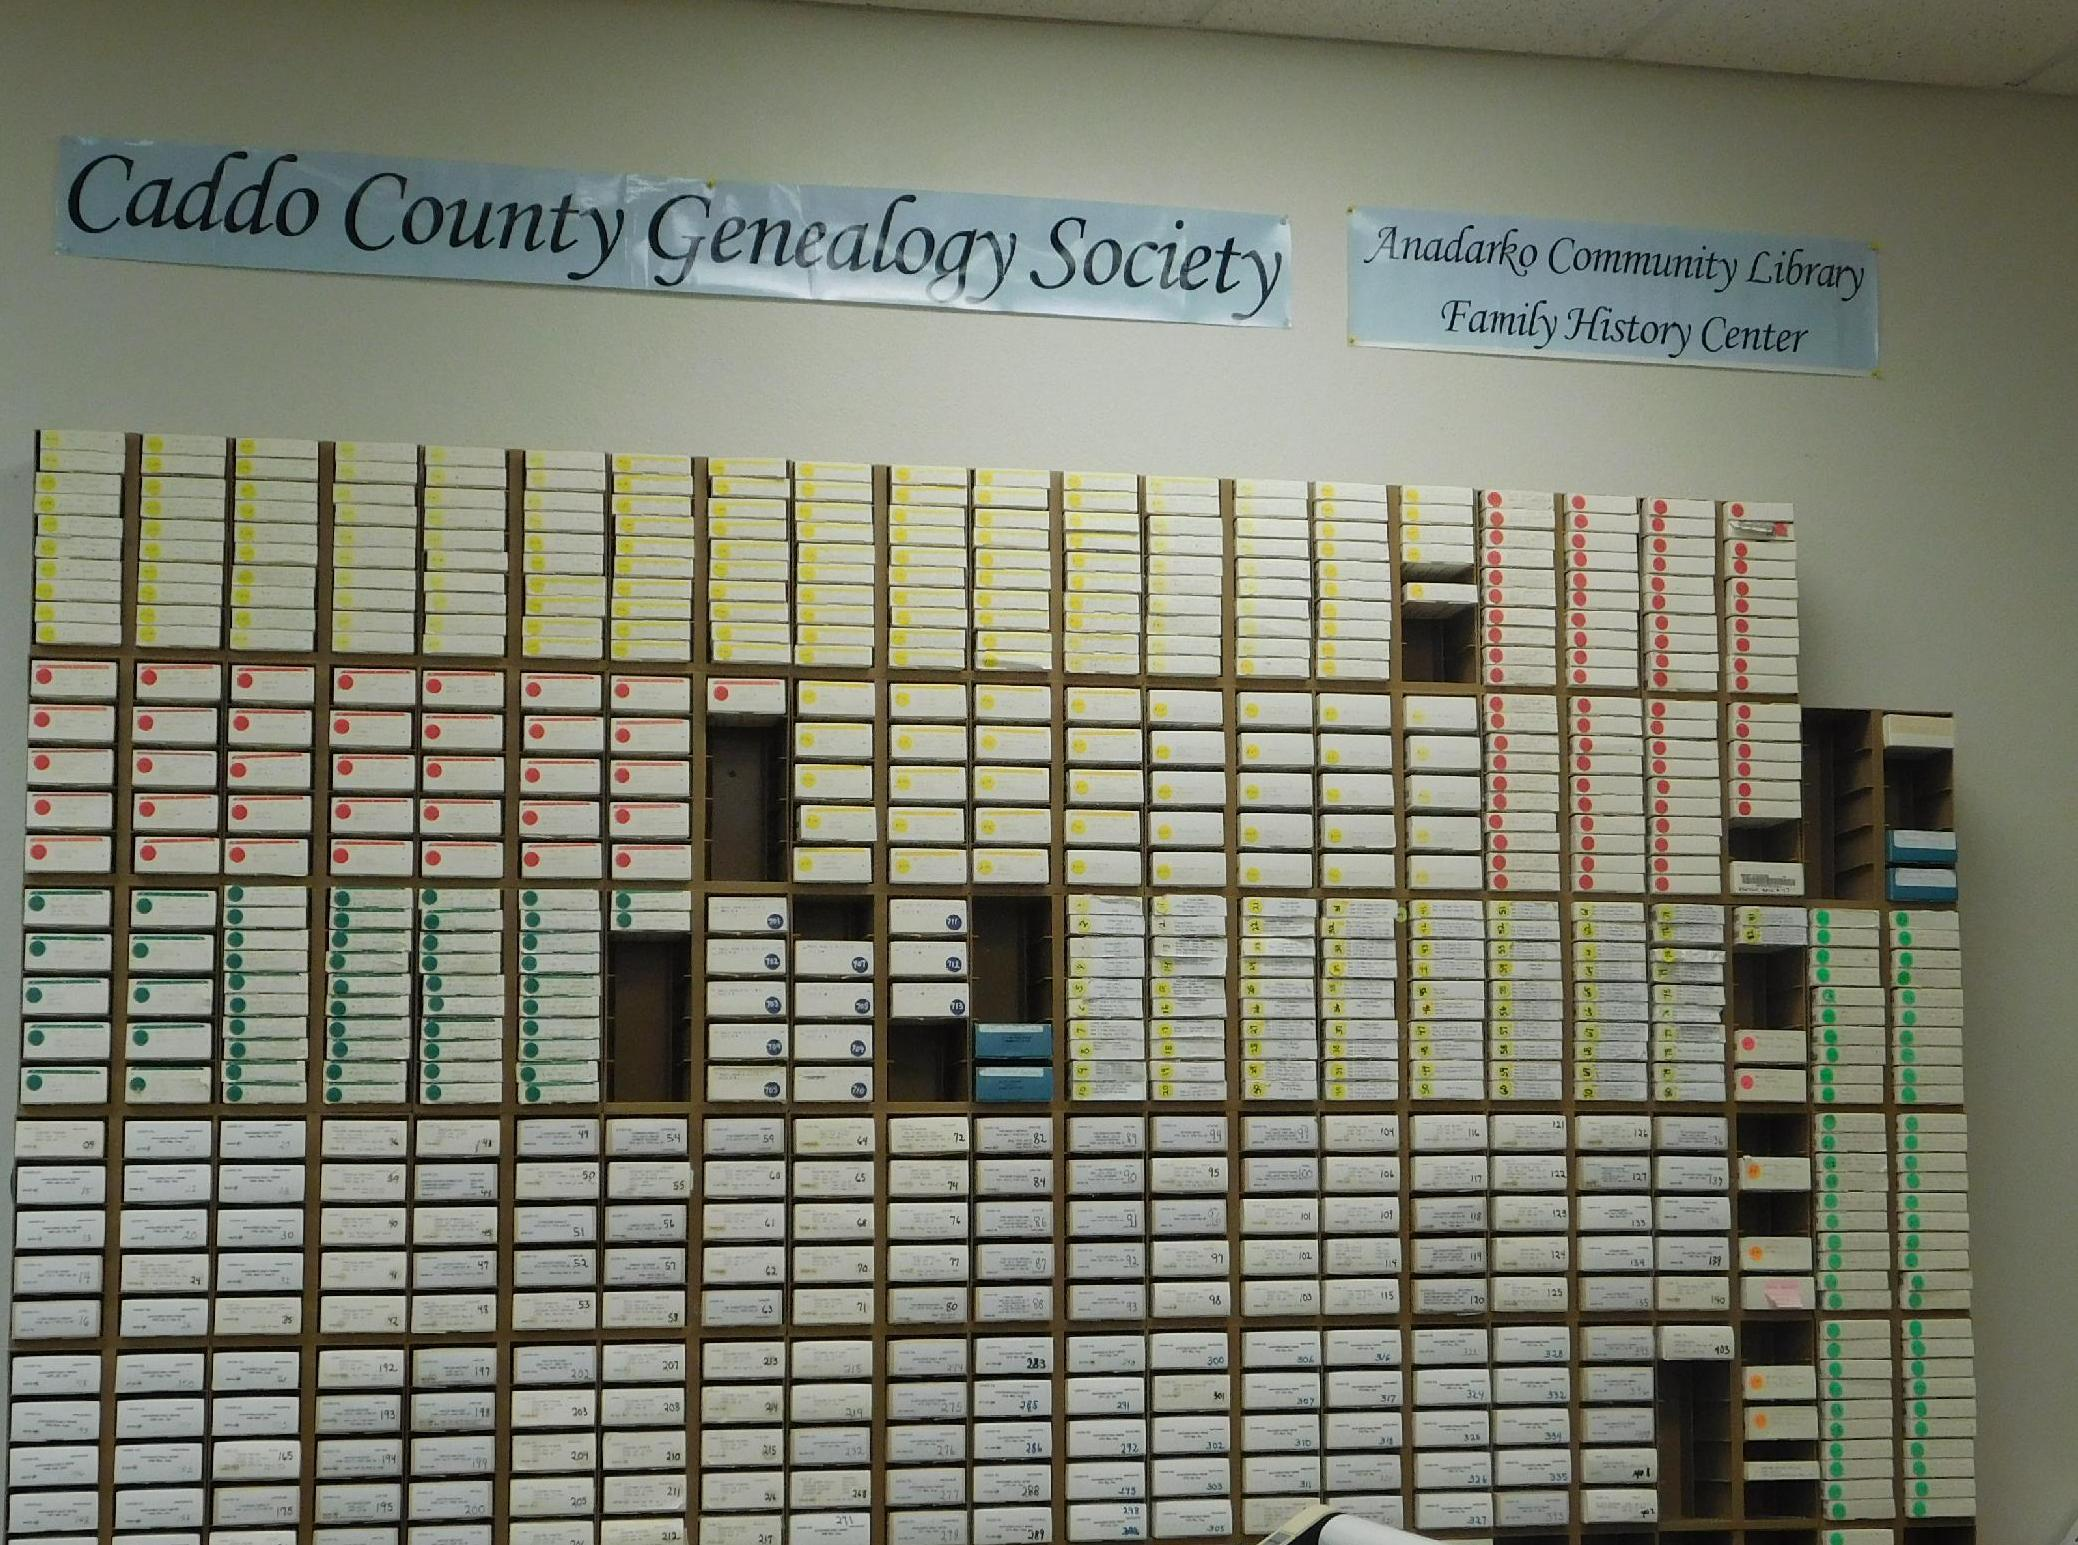 Caddo County Genealogy Society